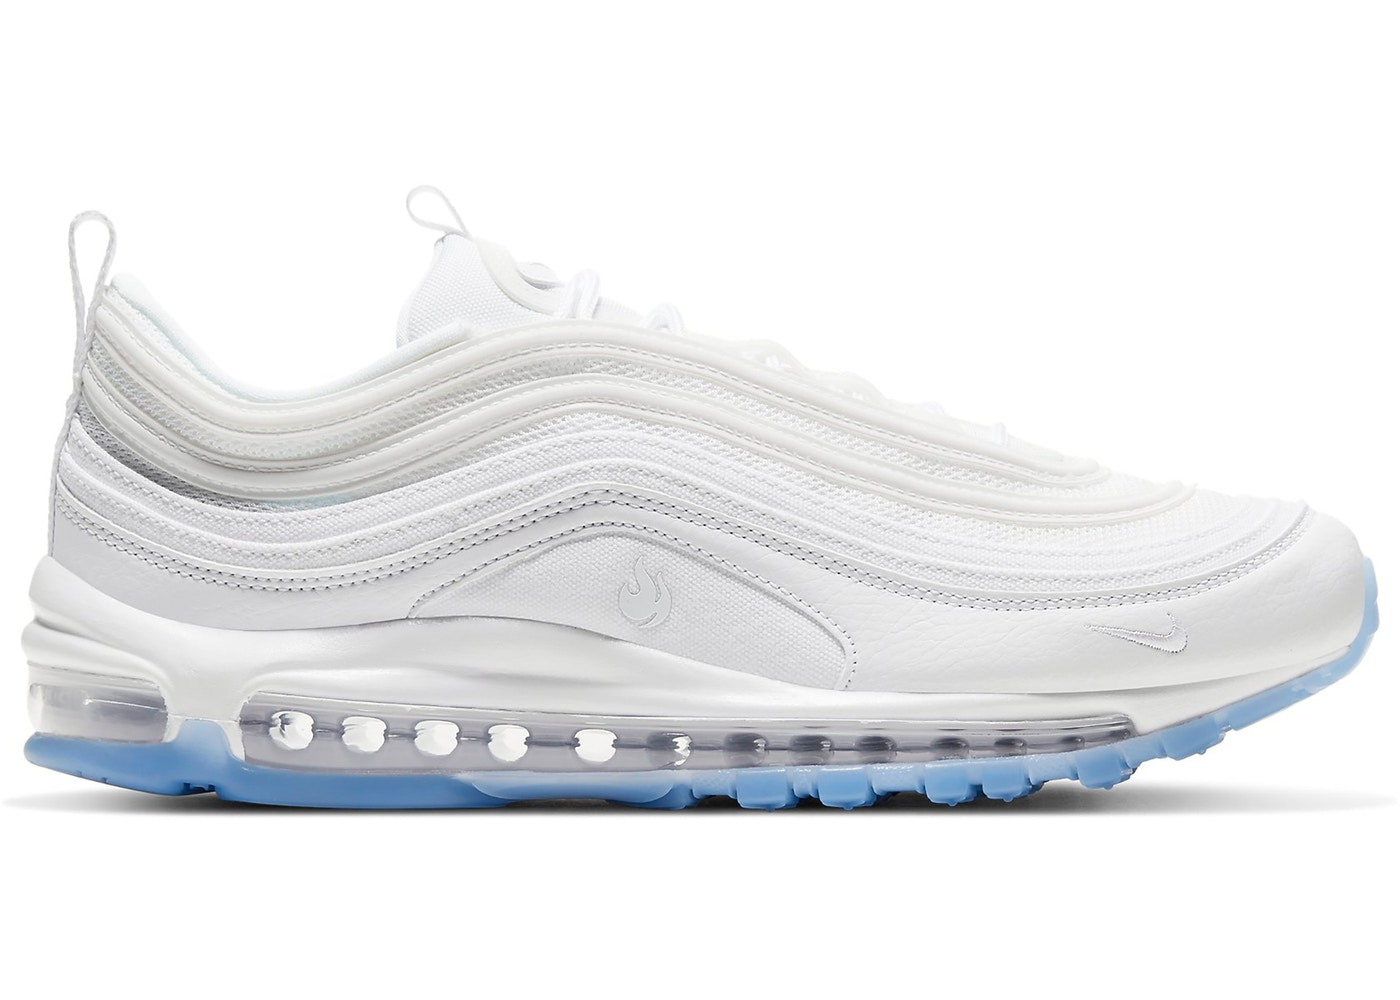 Nike Air Max 97 White Hot Ct4526 100